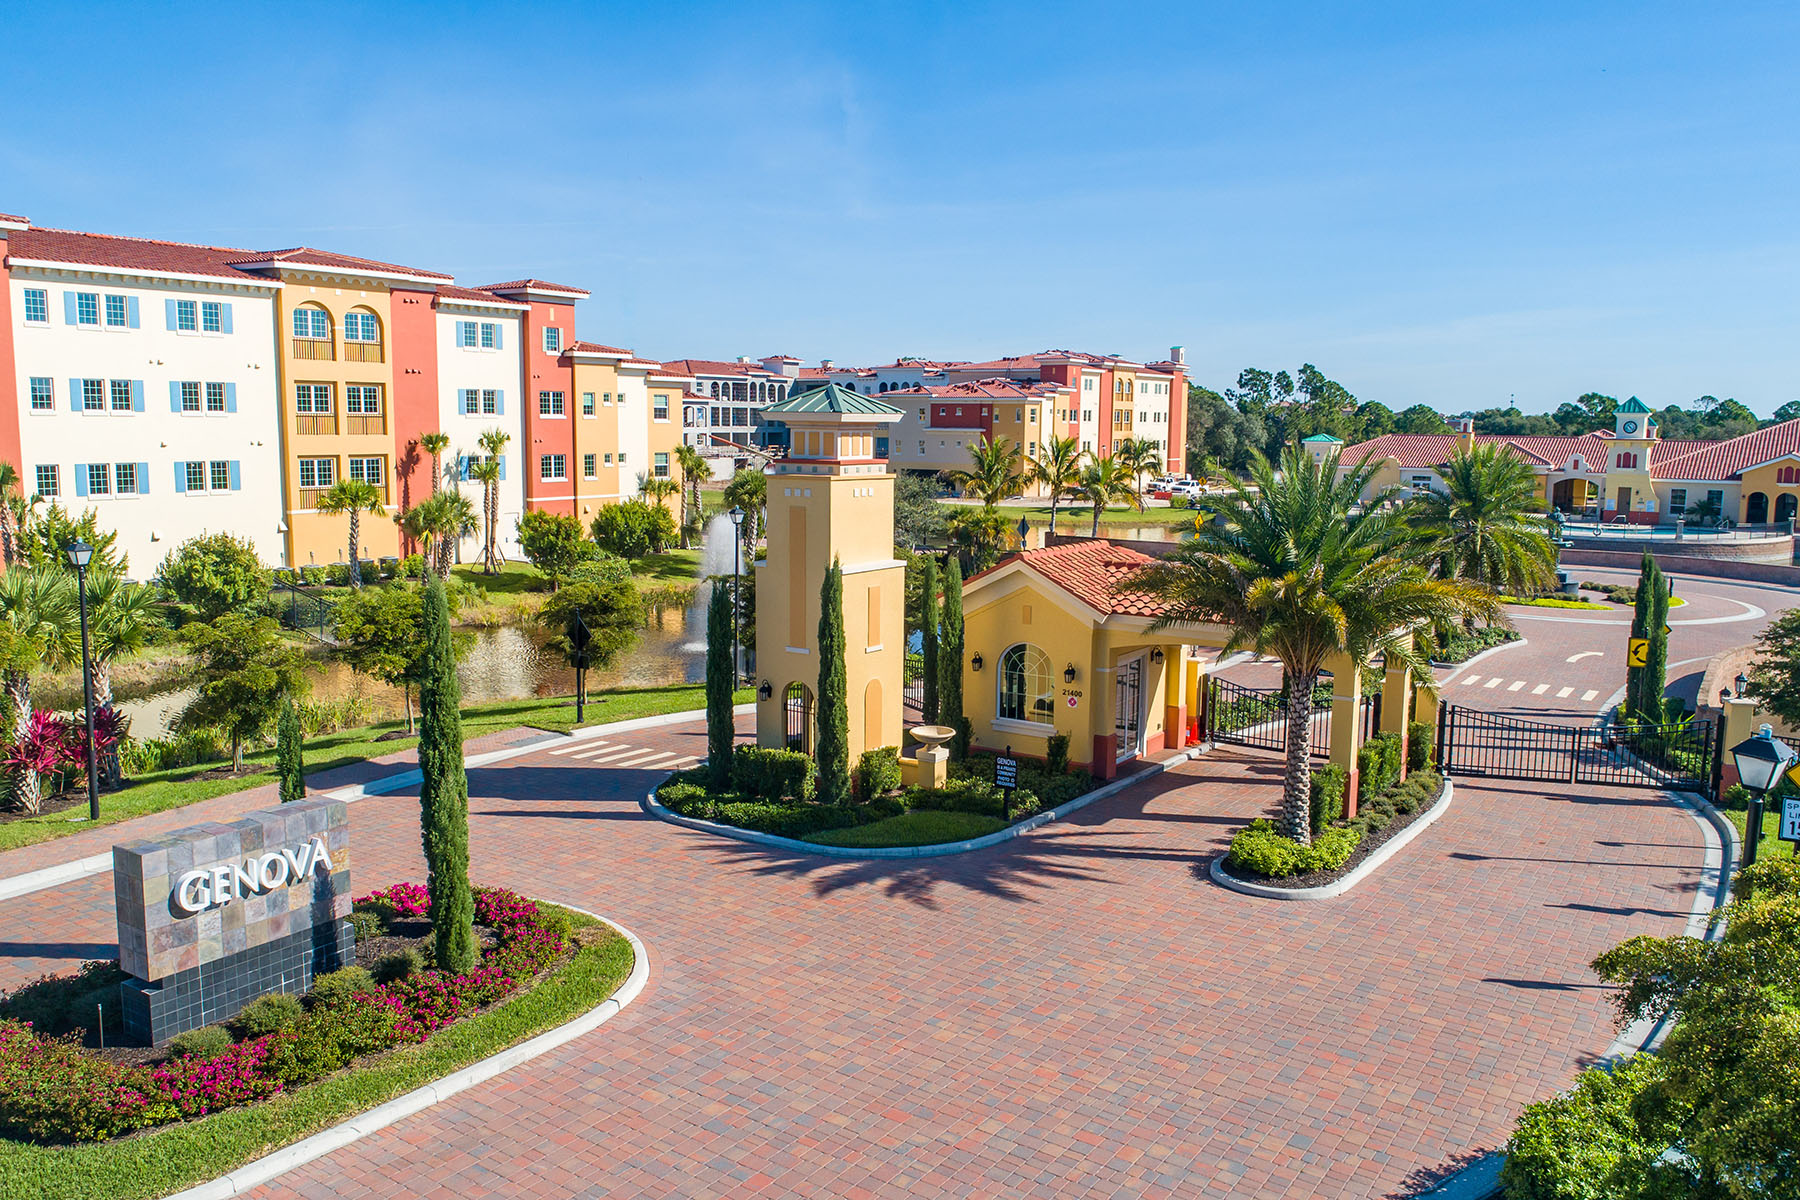 Condominiums for Sale at GENOVA 21520 Strada Nuova Circle , E-215, Estero, Florida 33928 United States